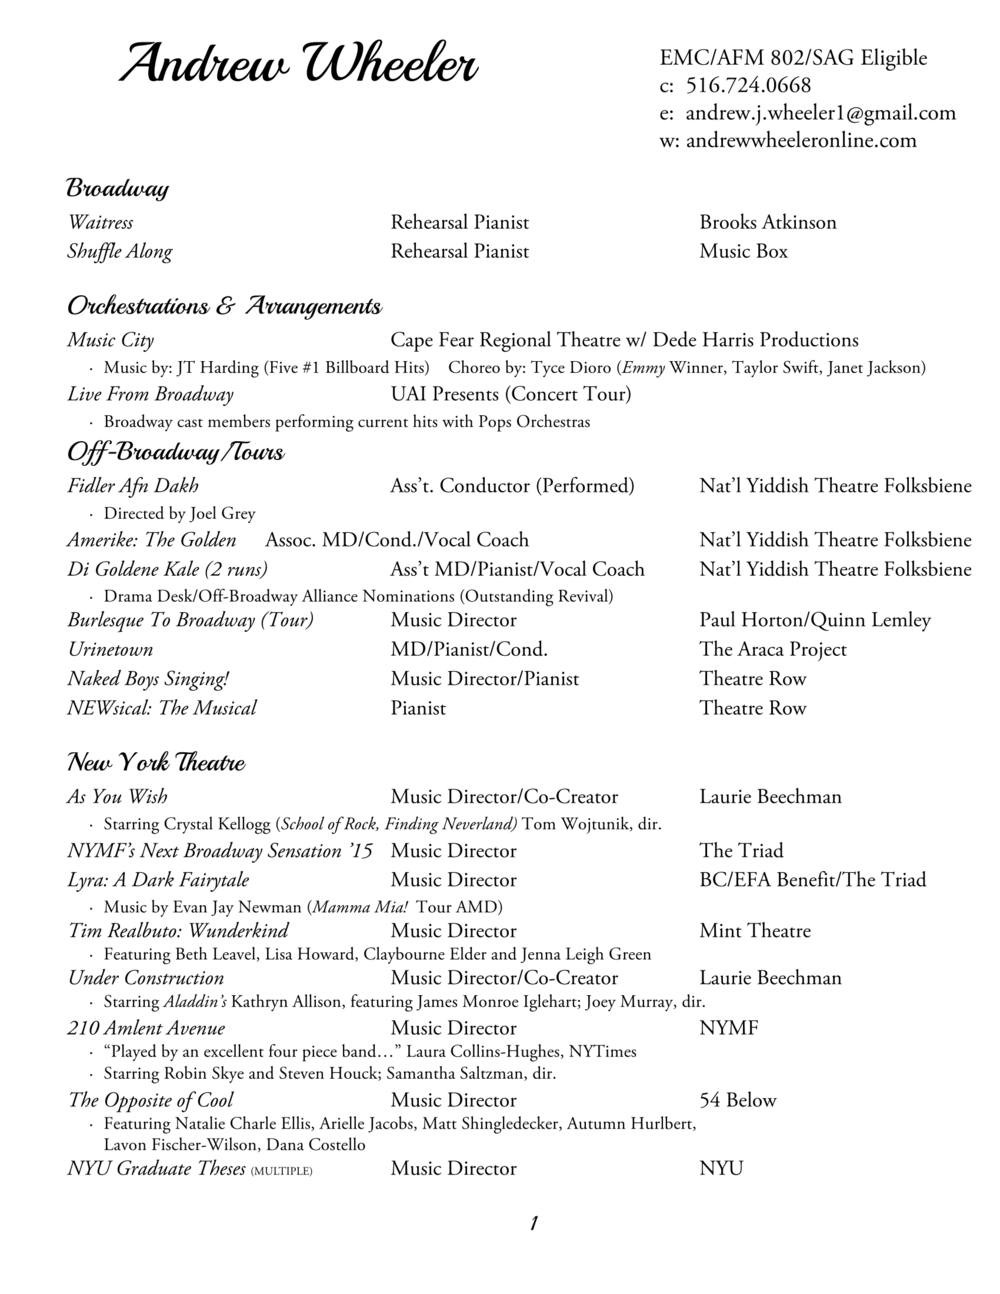 Resume — Andrew Wheeler